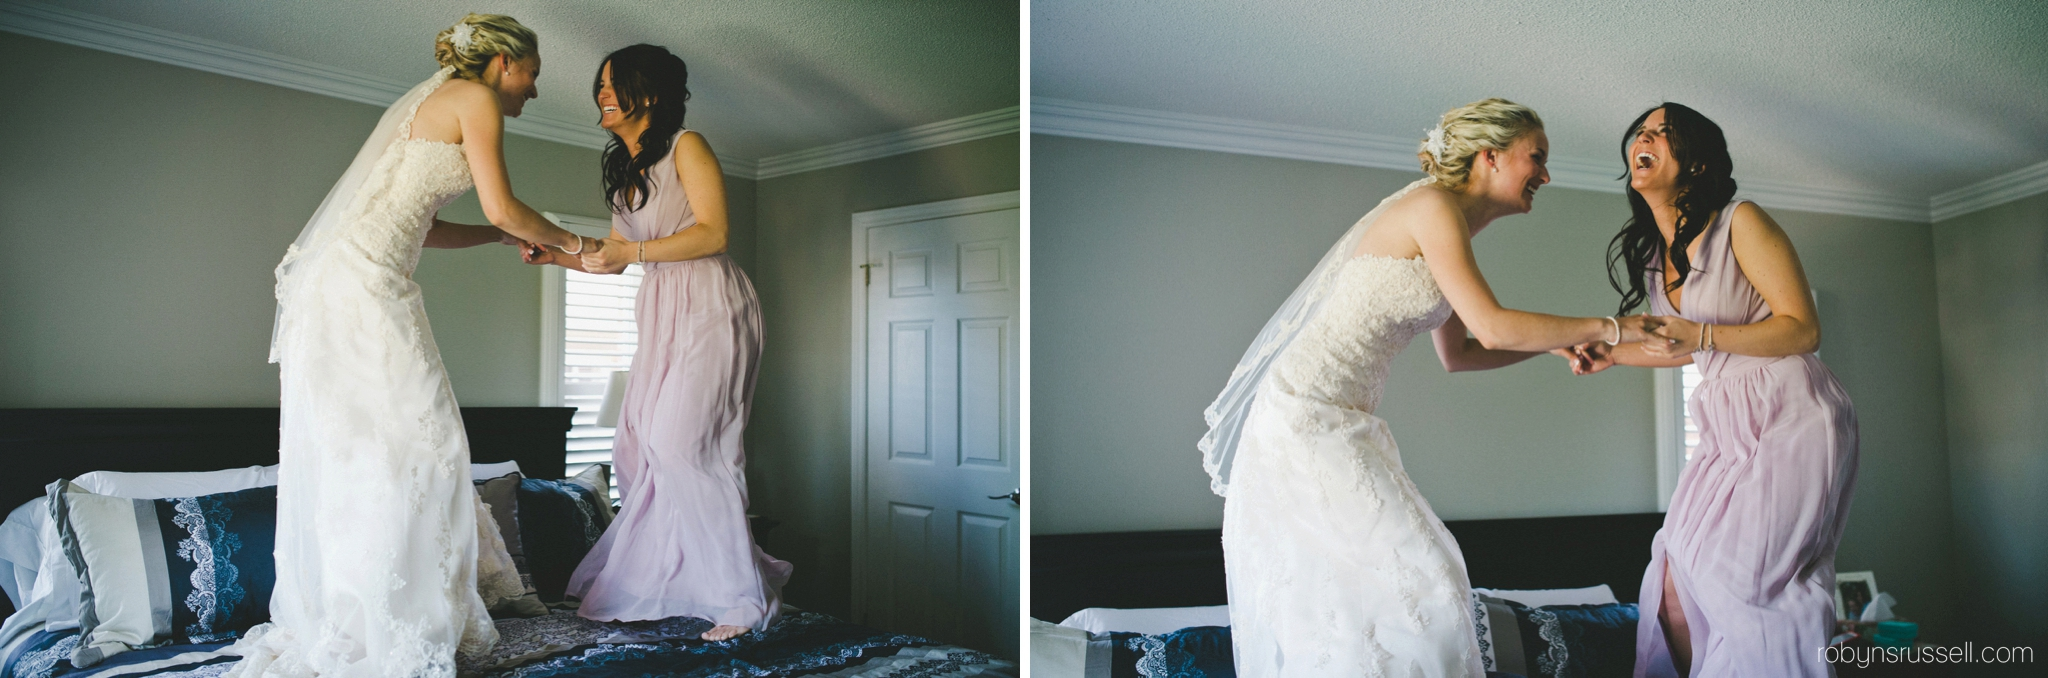 16-bride-and-maid-of-honour-jumping-on-bed.jpg